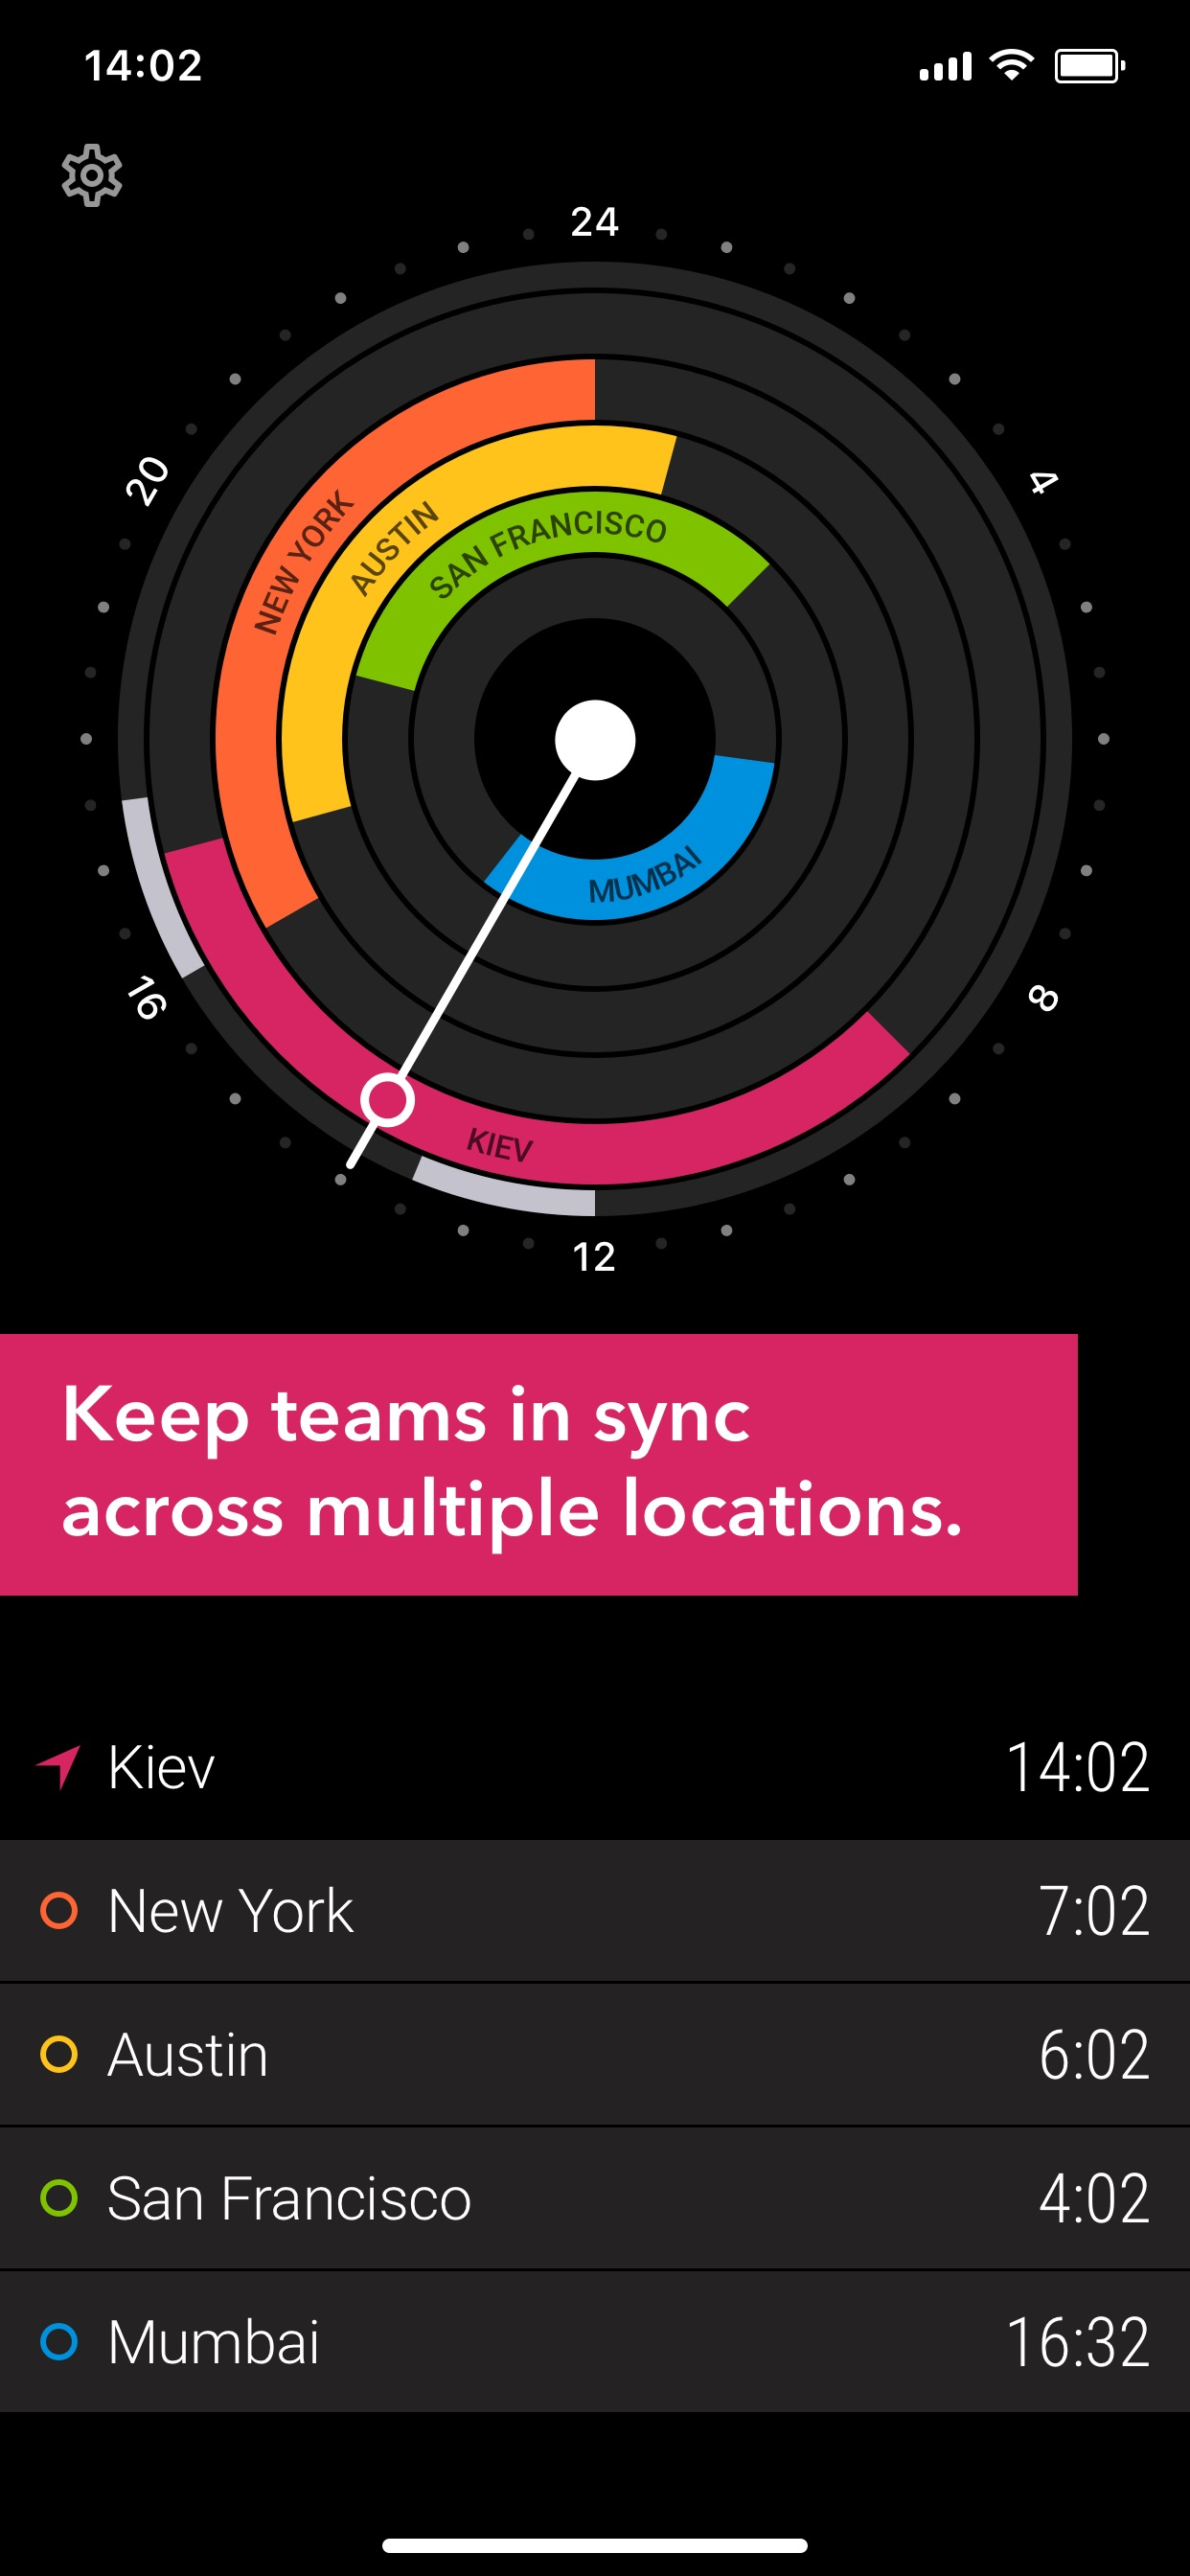 Keep teams in sync across multiple locations